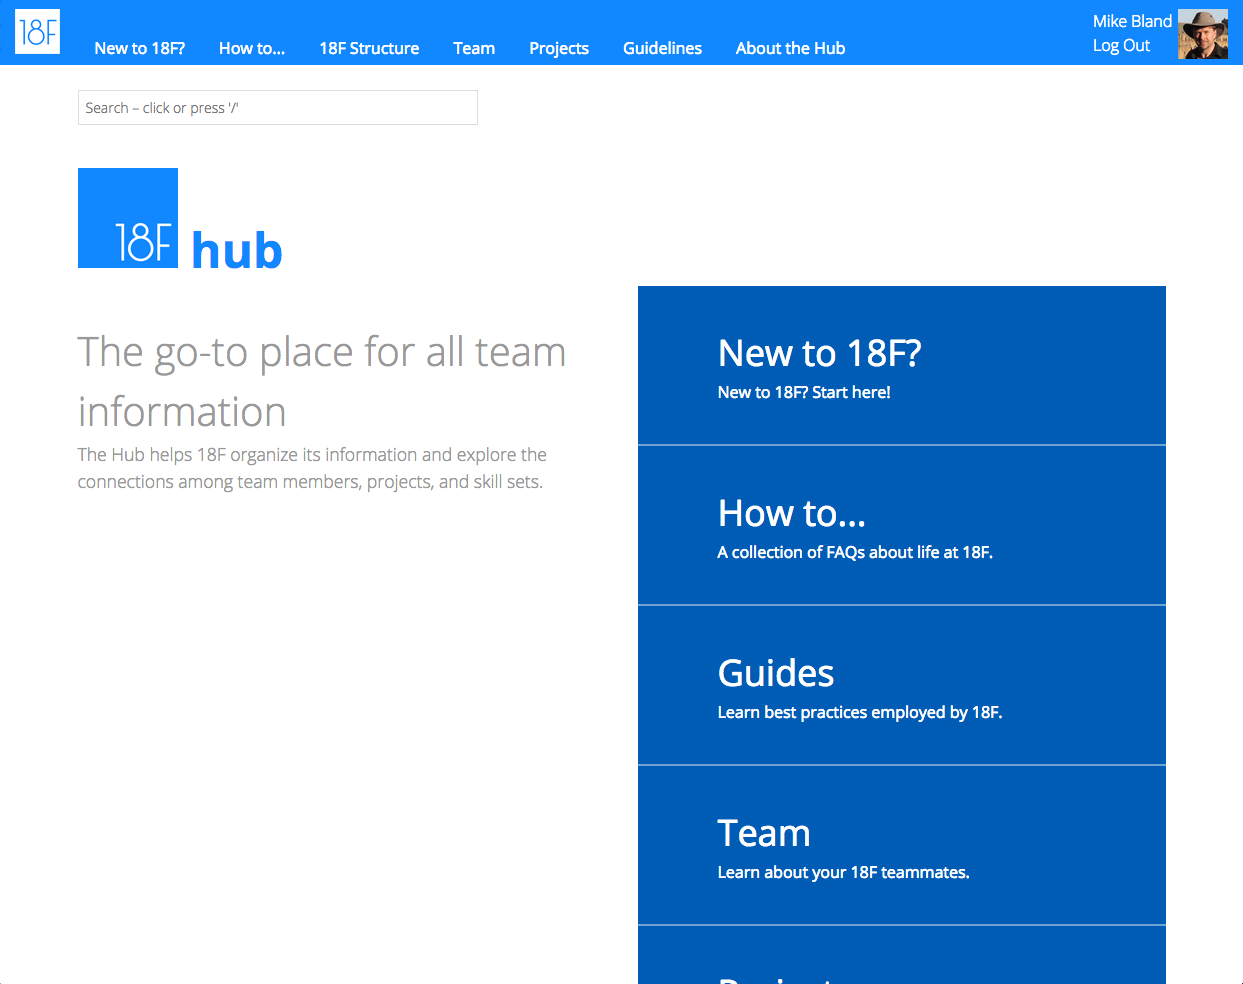 The front page of The Hub